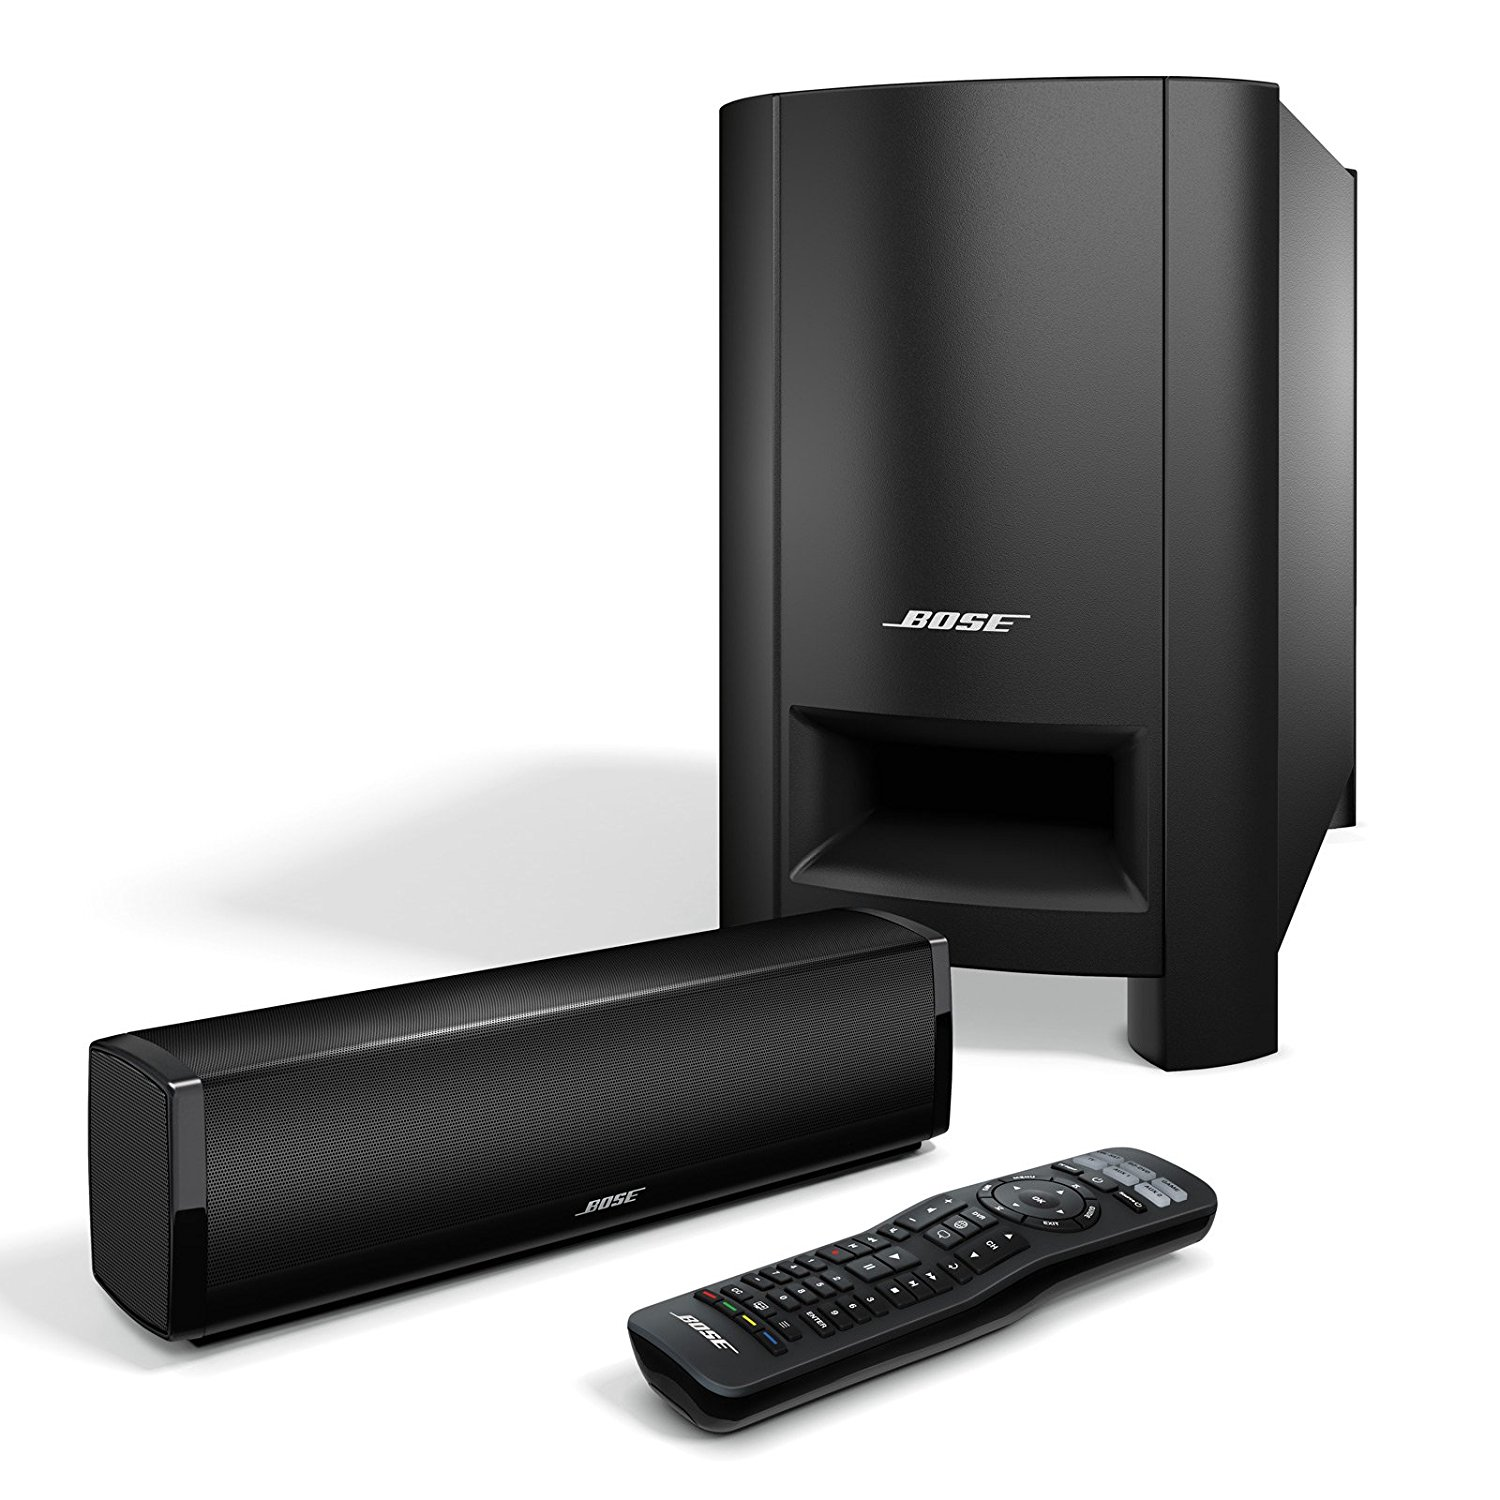 10 Photos 15 Reviews: Bose CineMate 15 Speaker System Review